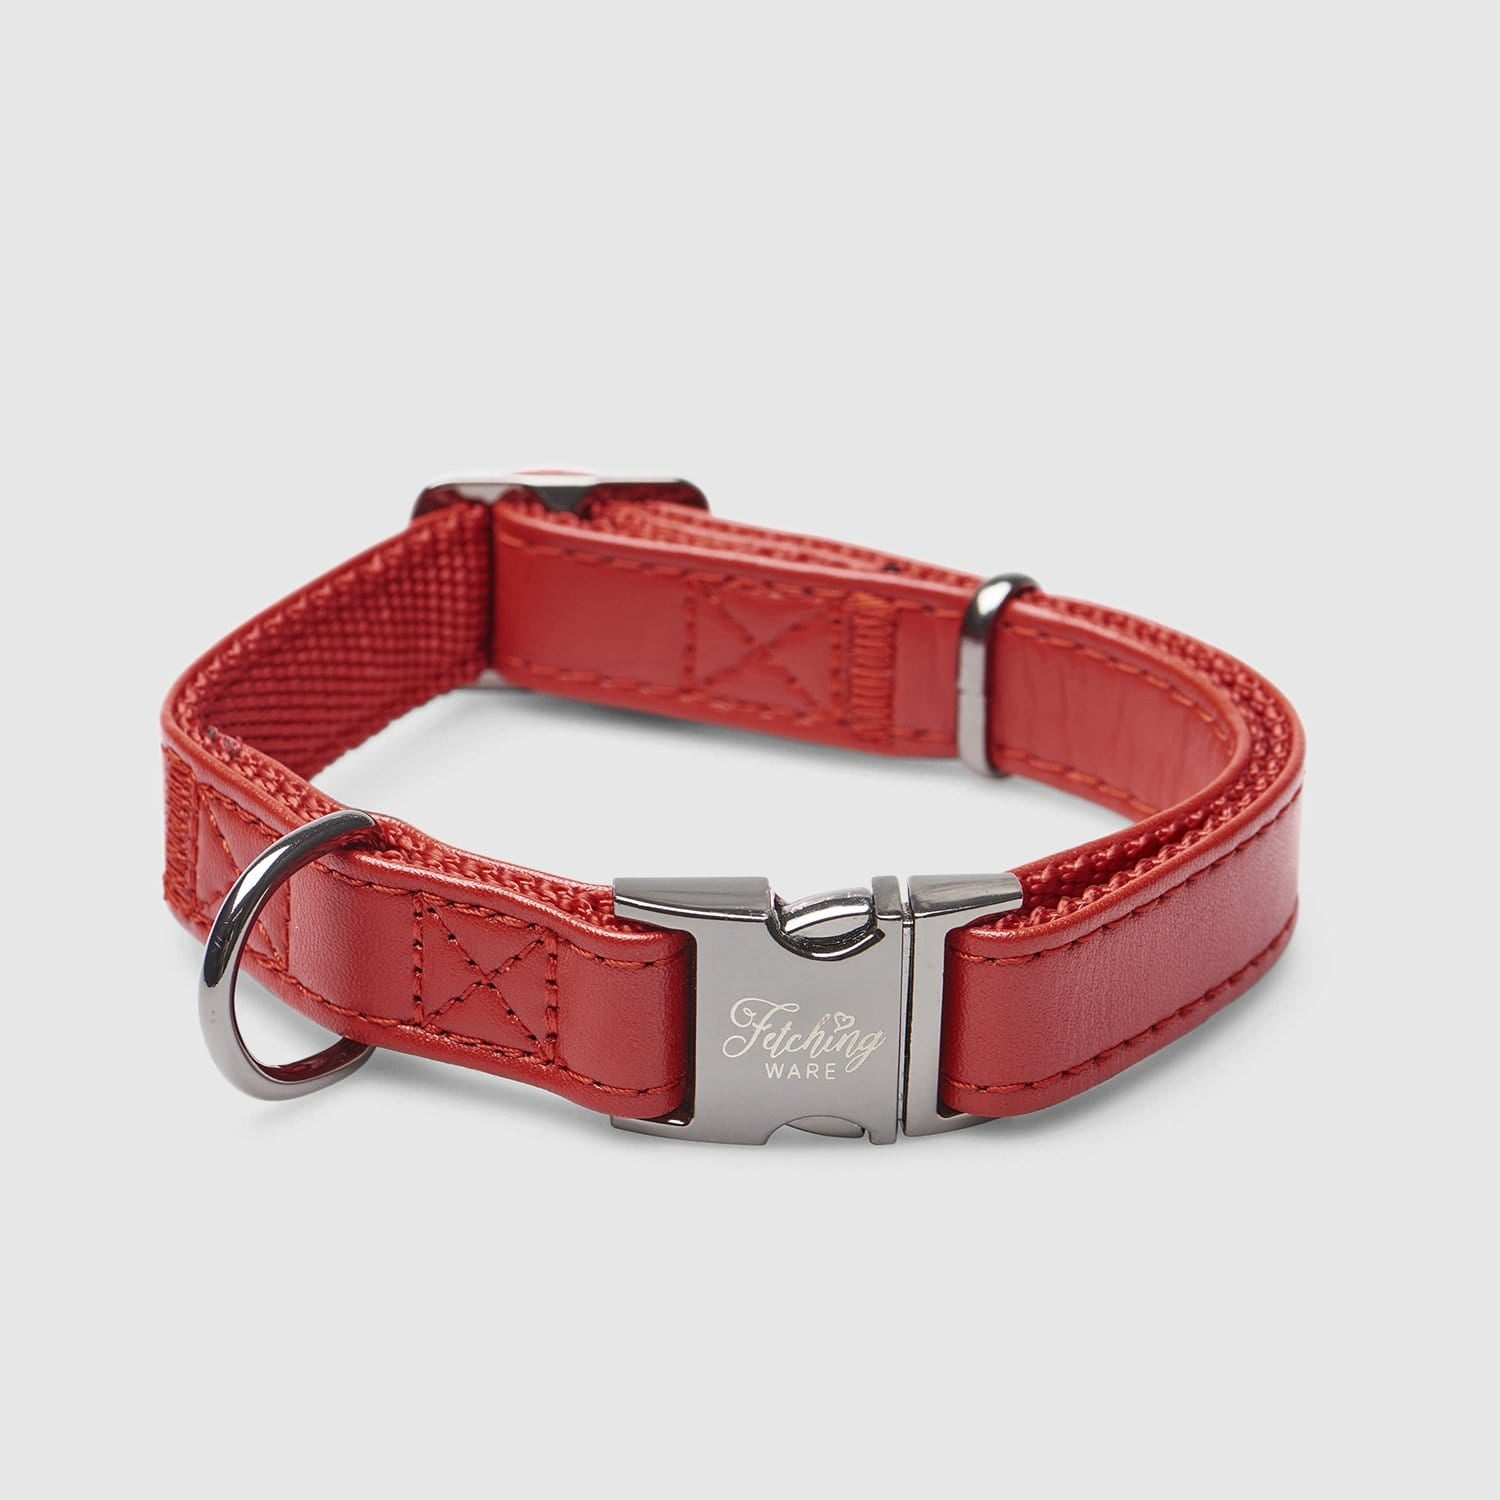 Fetching Ware Tuscany in Gunmetal Collars